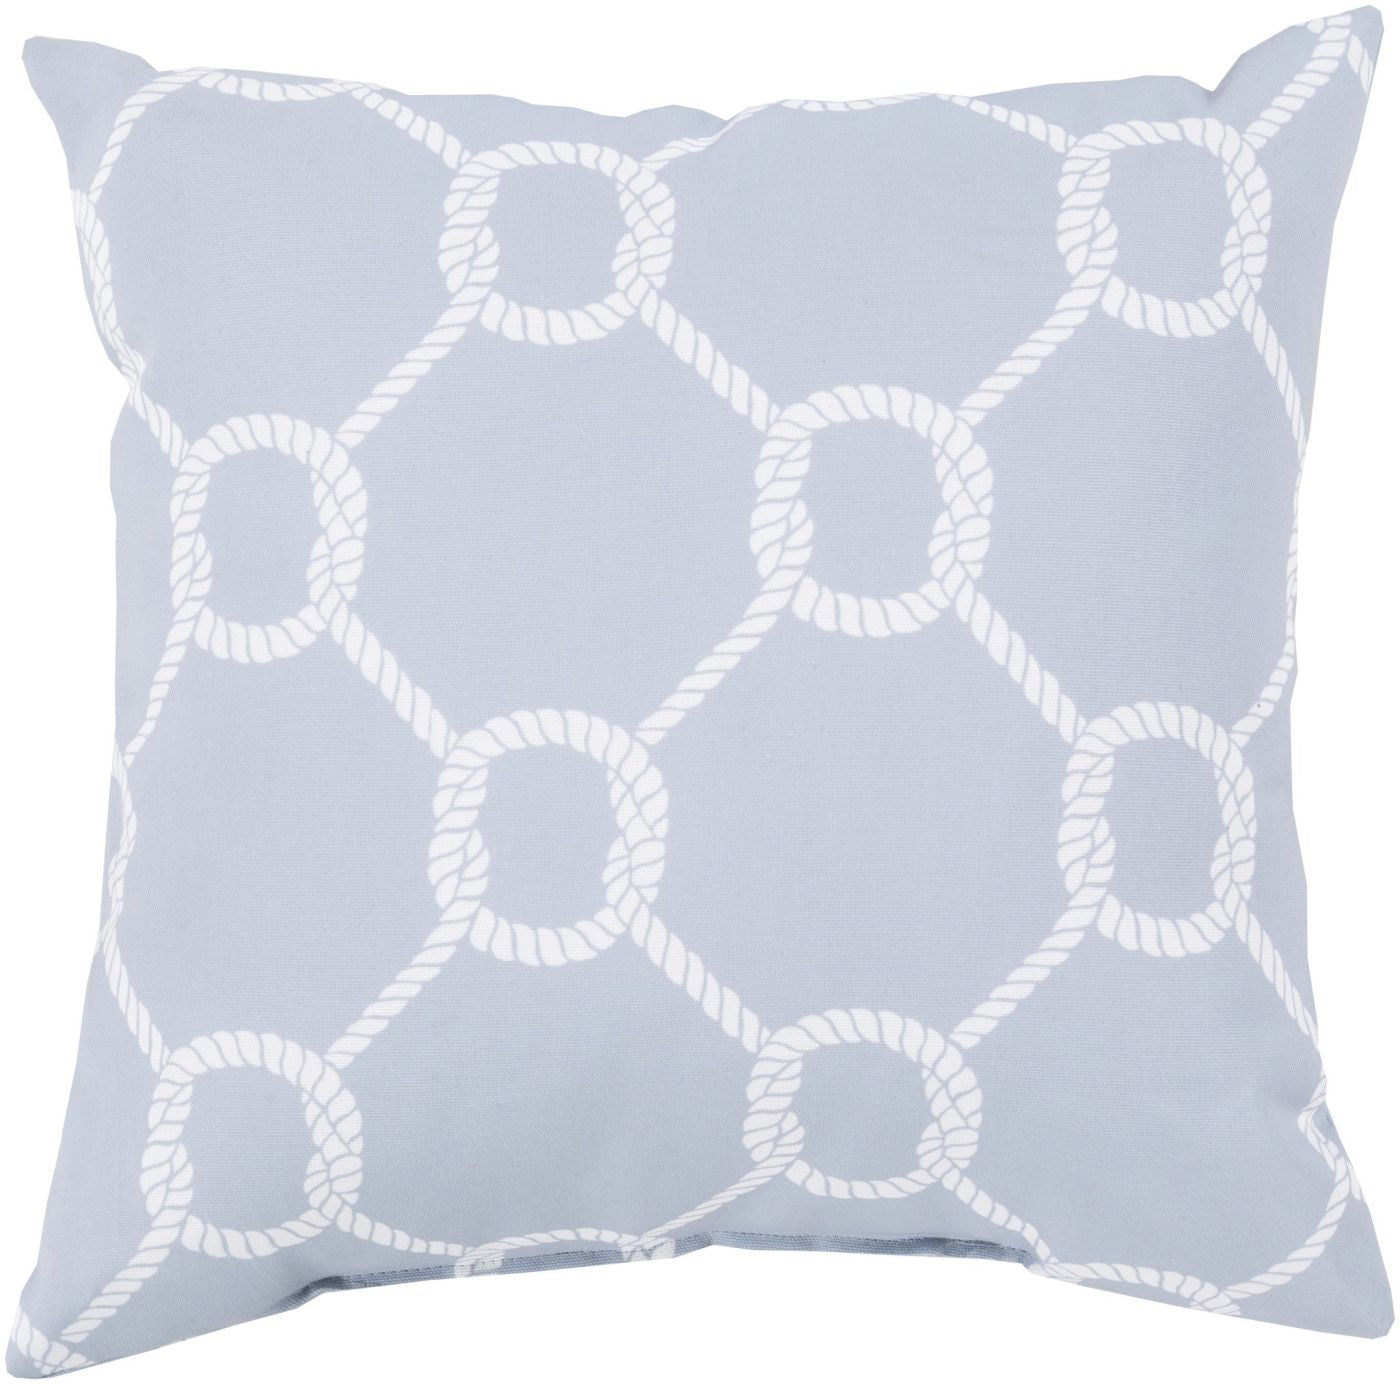 Surya Rain Throw Pillow Gray, Neutral RG148-1818. Only $37.80 at Contemporary Furniture Warehouse.